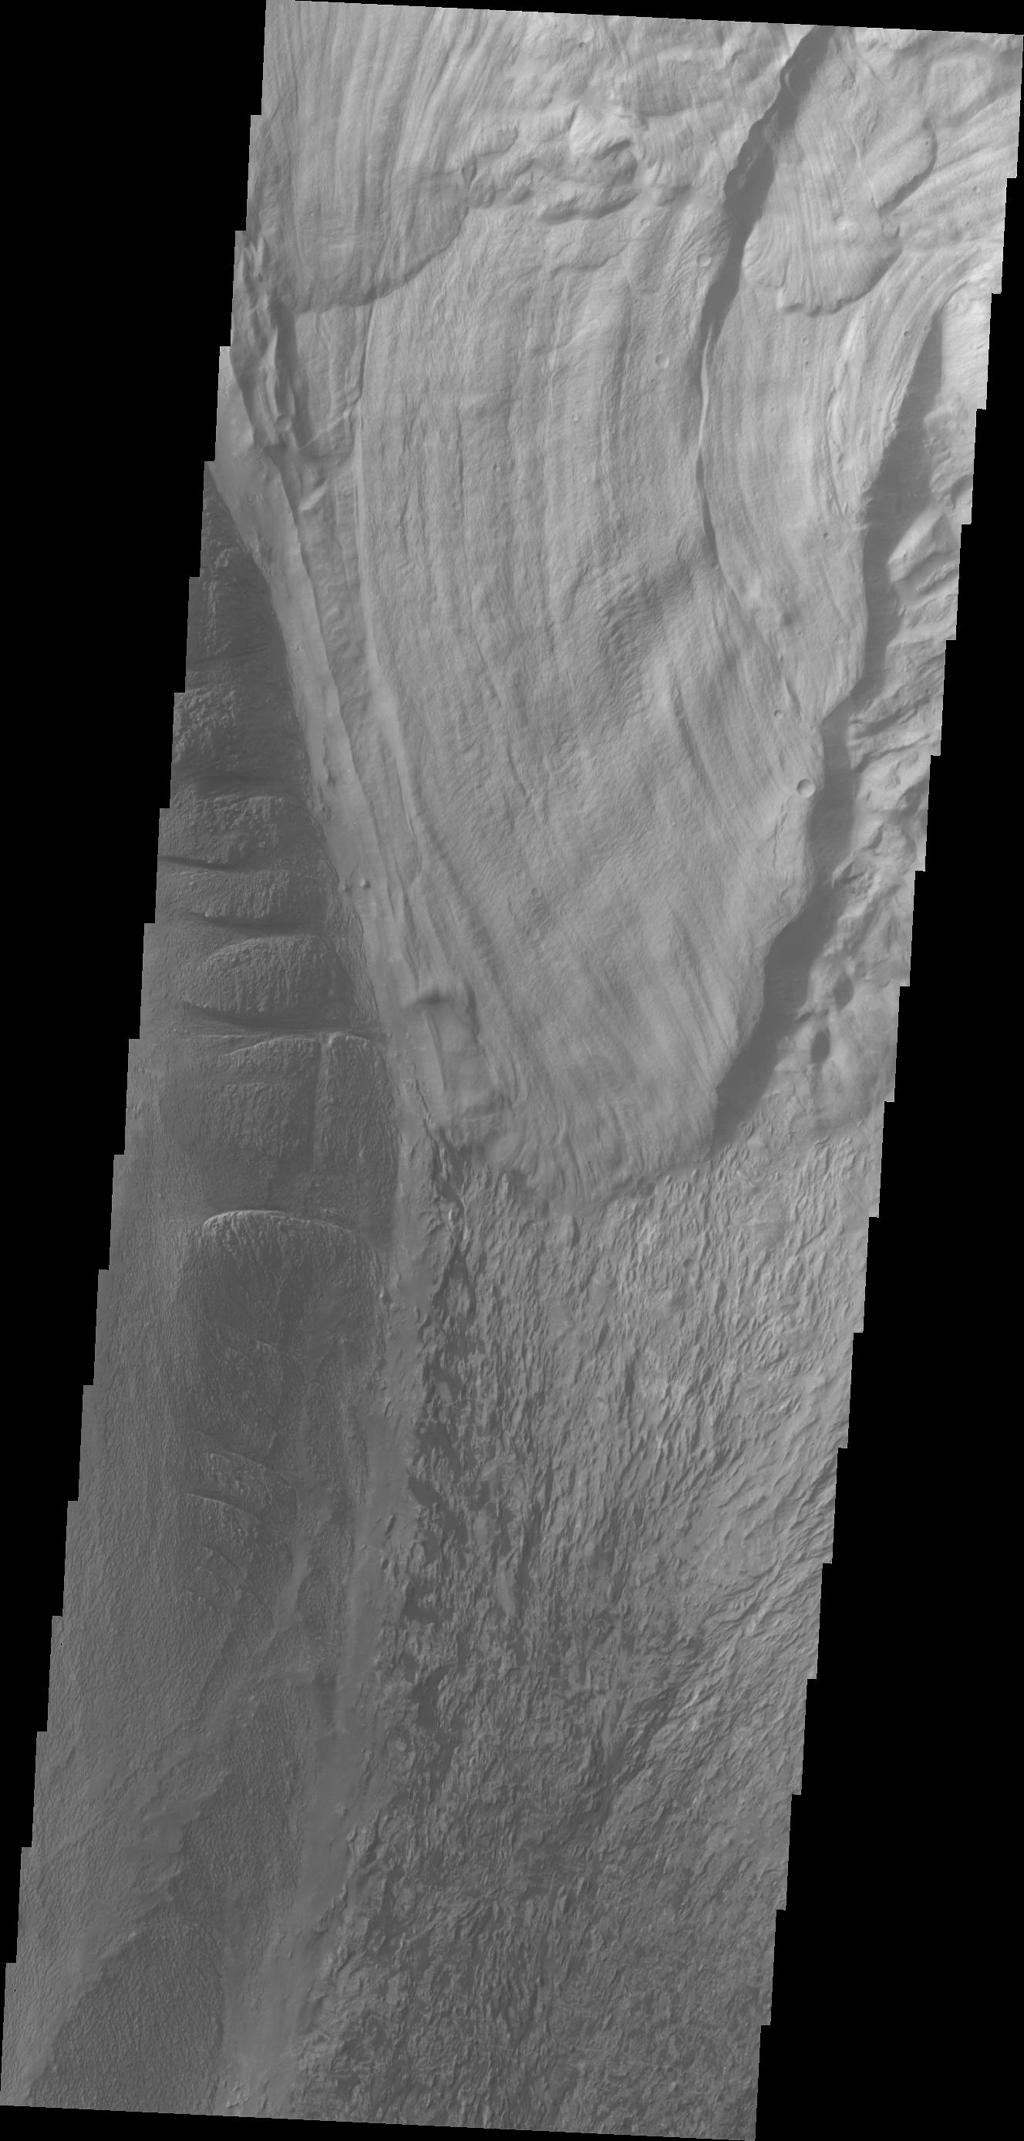 This image from NASA's 2001 Mars Odyssey shows a landslide deposit in Ophir Chasma.